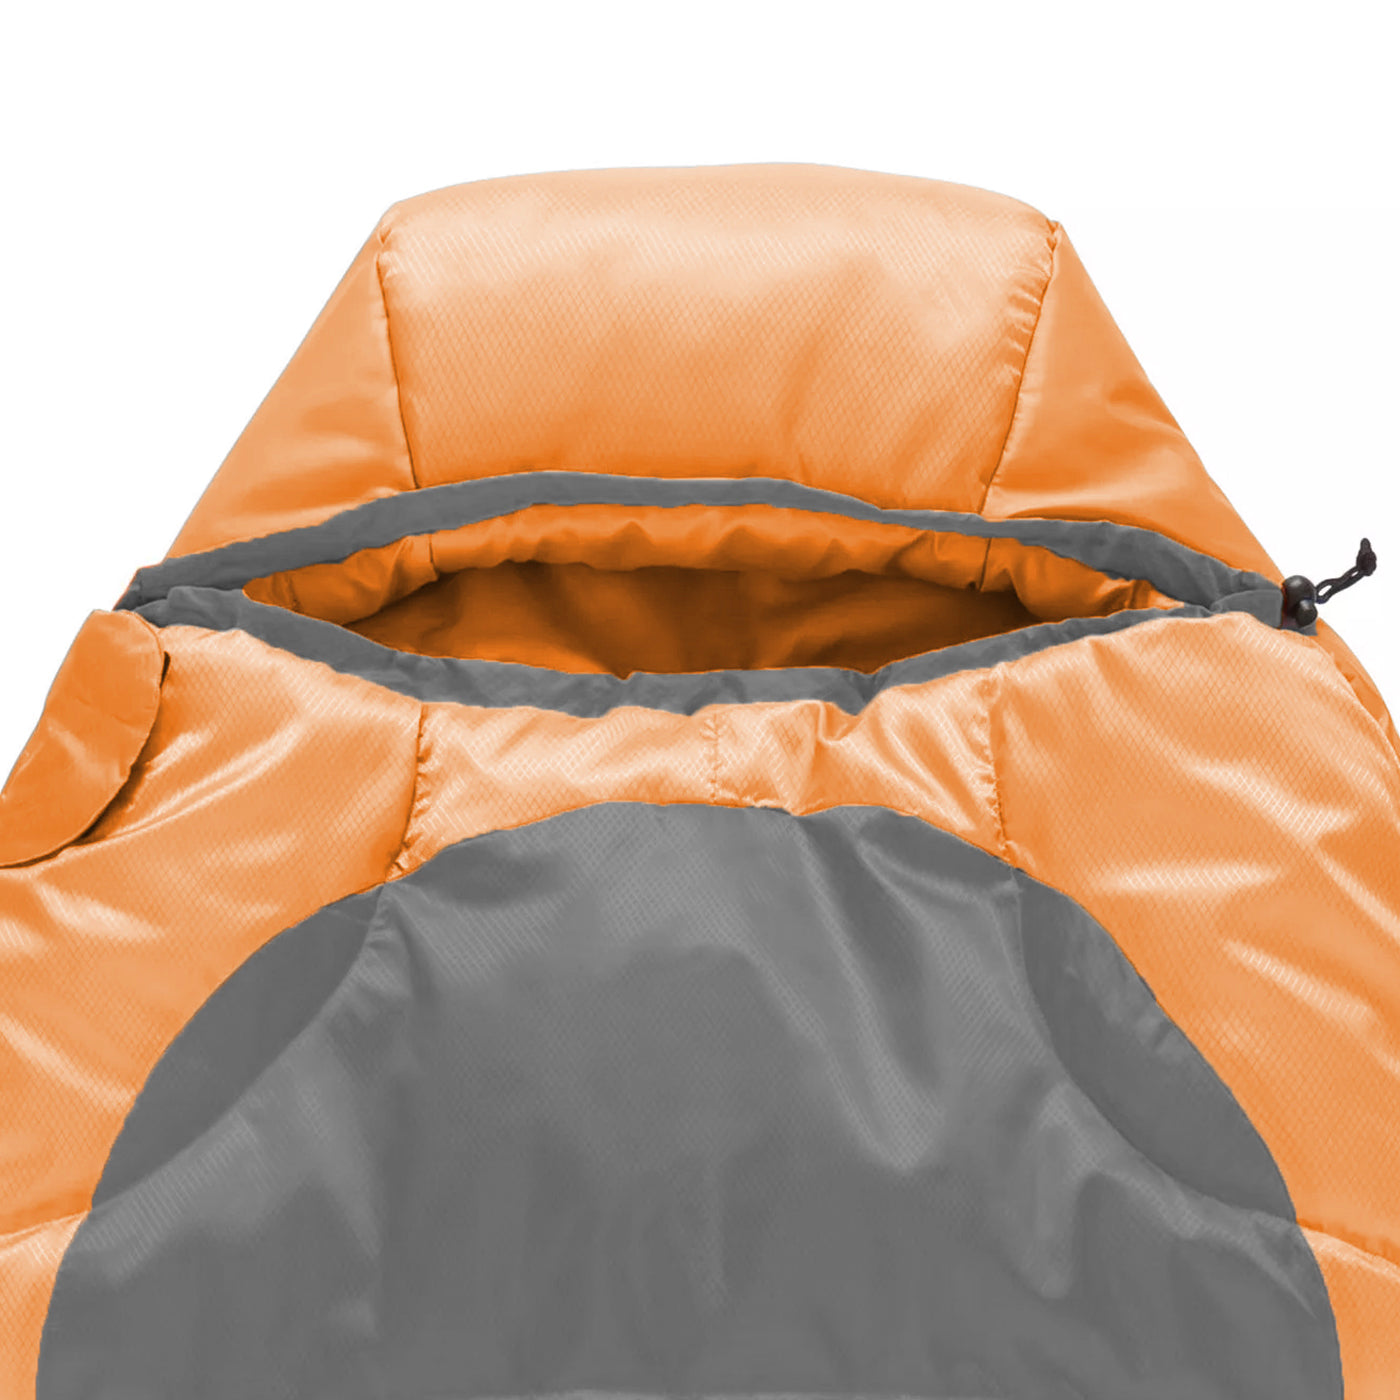 JUNELILY Mummy-Style Sleeping Bag 10°F Insulation for Camping Hiking